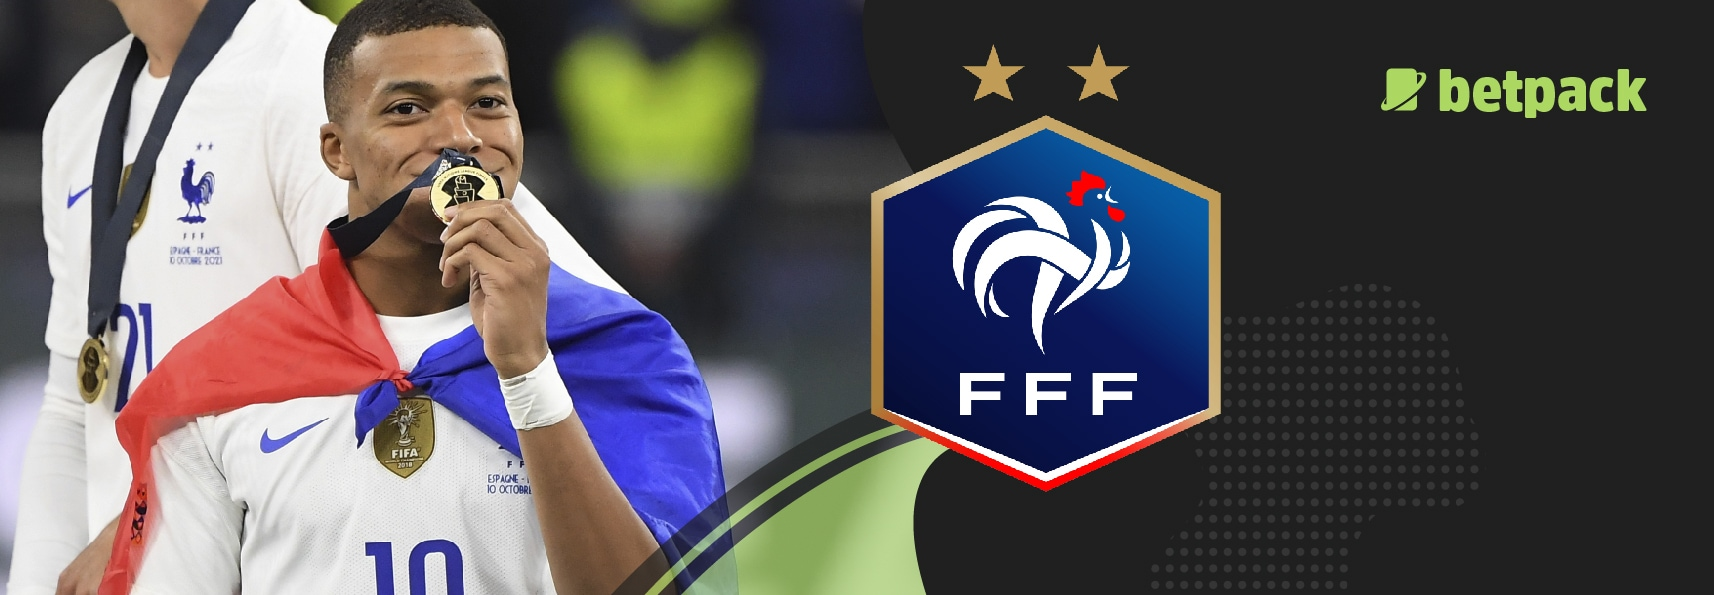 France win UEFA after Mbappe's controversial goal